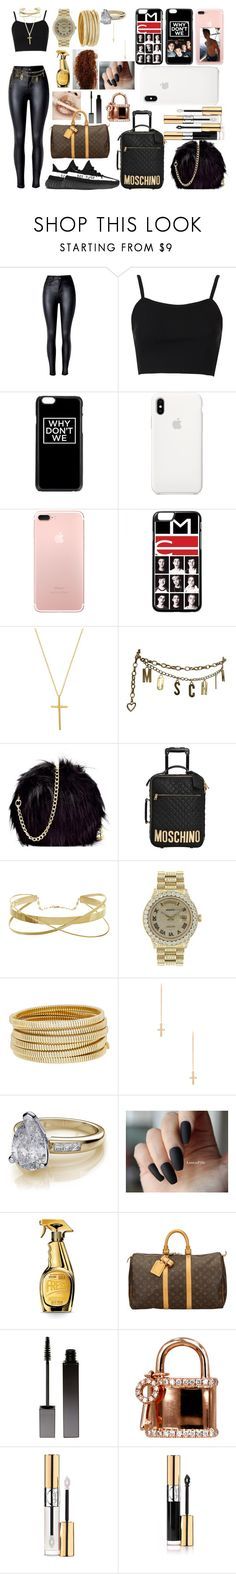 """""""Untitled #236"""" by duhitzparis ❤ liked on Polyvore featuring Topshop, Apple, Natalie B, Moschino, adidas, Rolex, Bagutta, ERTH, Kylie Cosmetics and Louis Vuitton"""